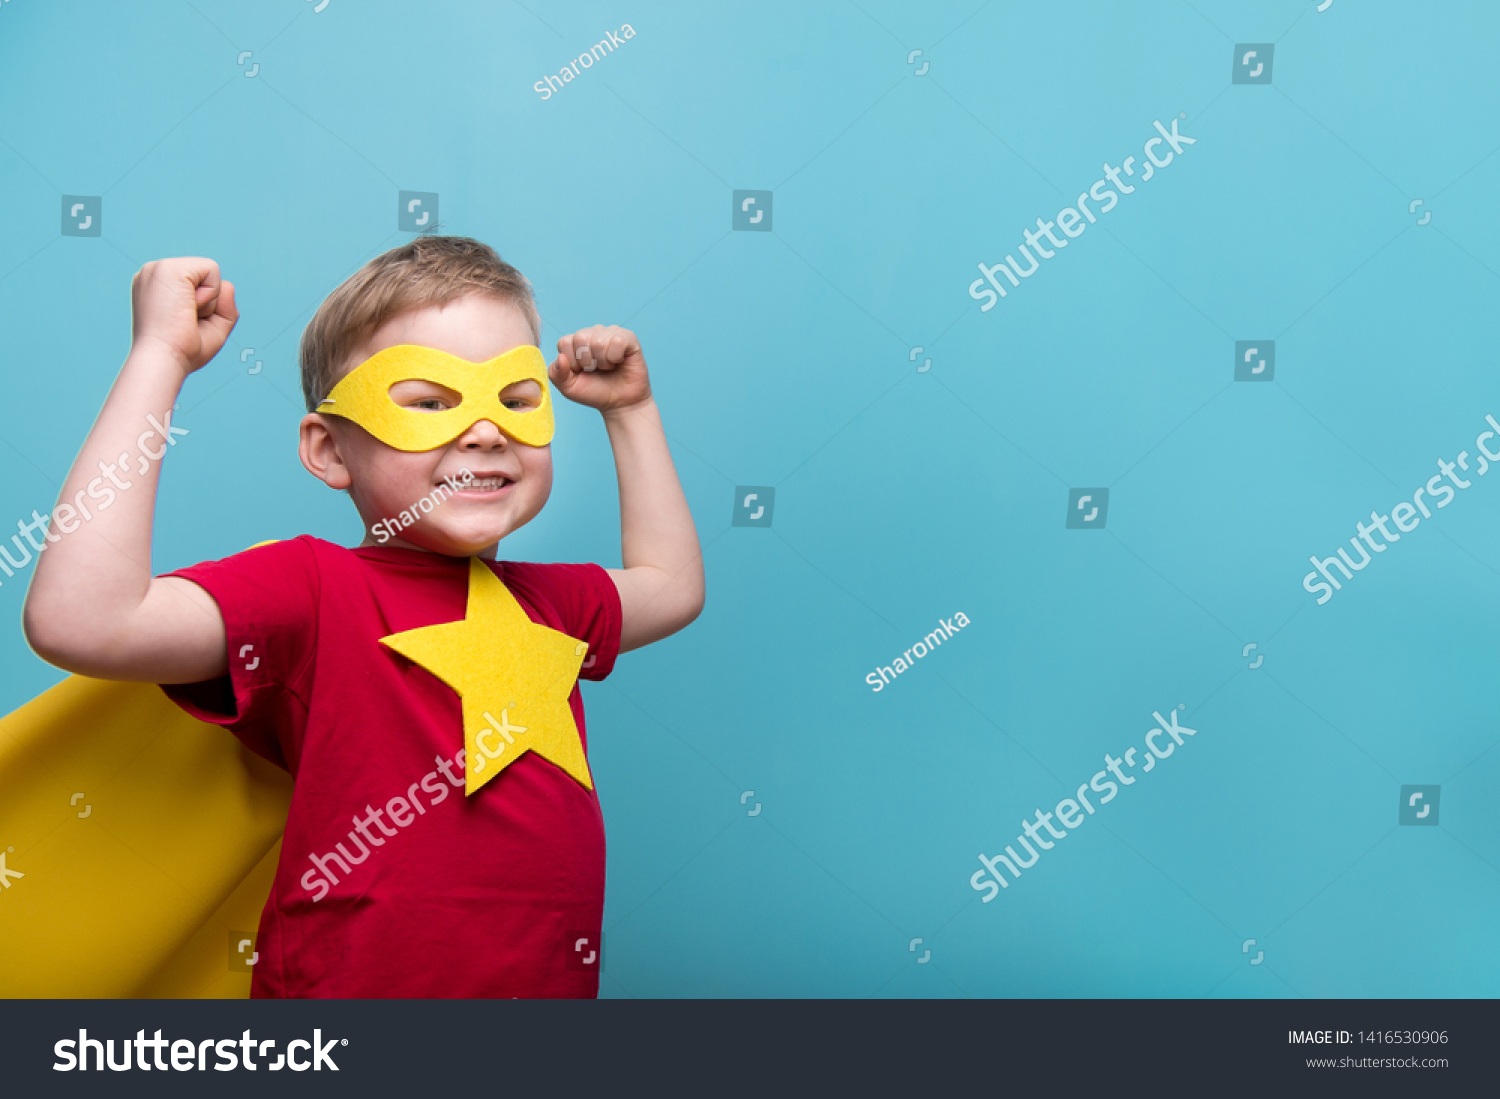 Little child superhero with yellow cloak and star. Happy smiling kid in glasses ready for education. Success, motivation concept. Back to school. Little businessman isolated on blue, Boy superhero.  #1416530906